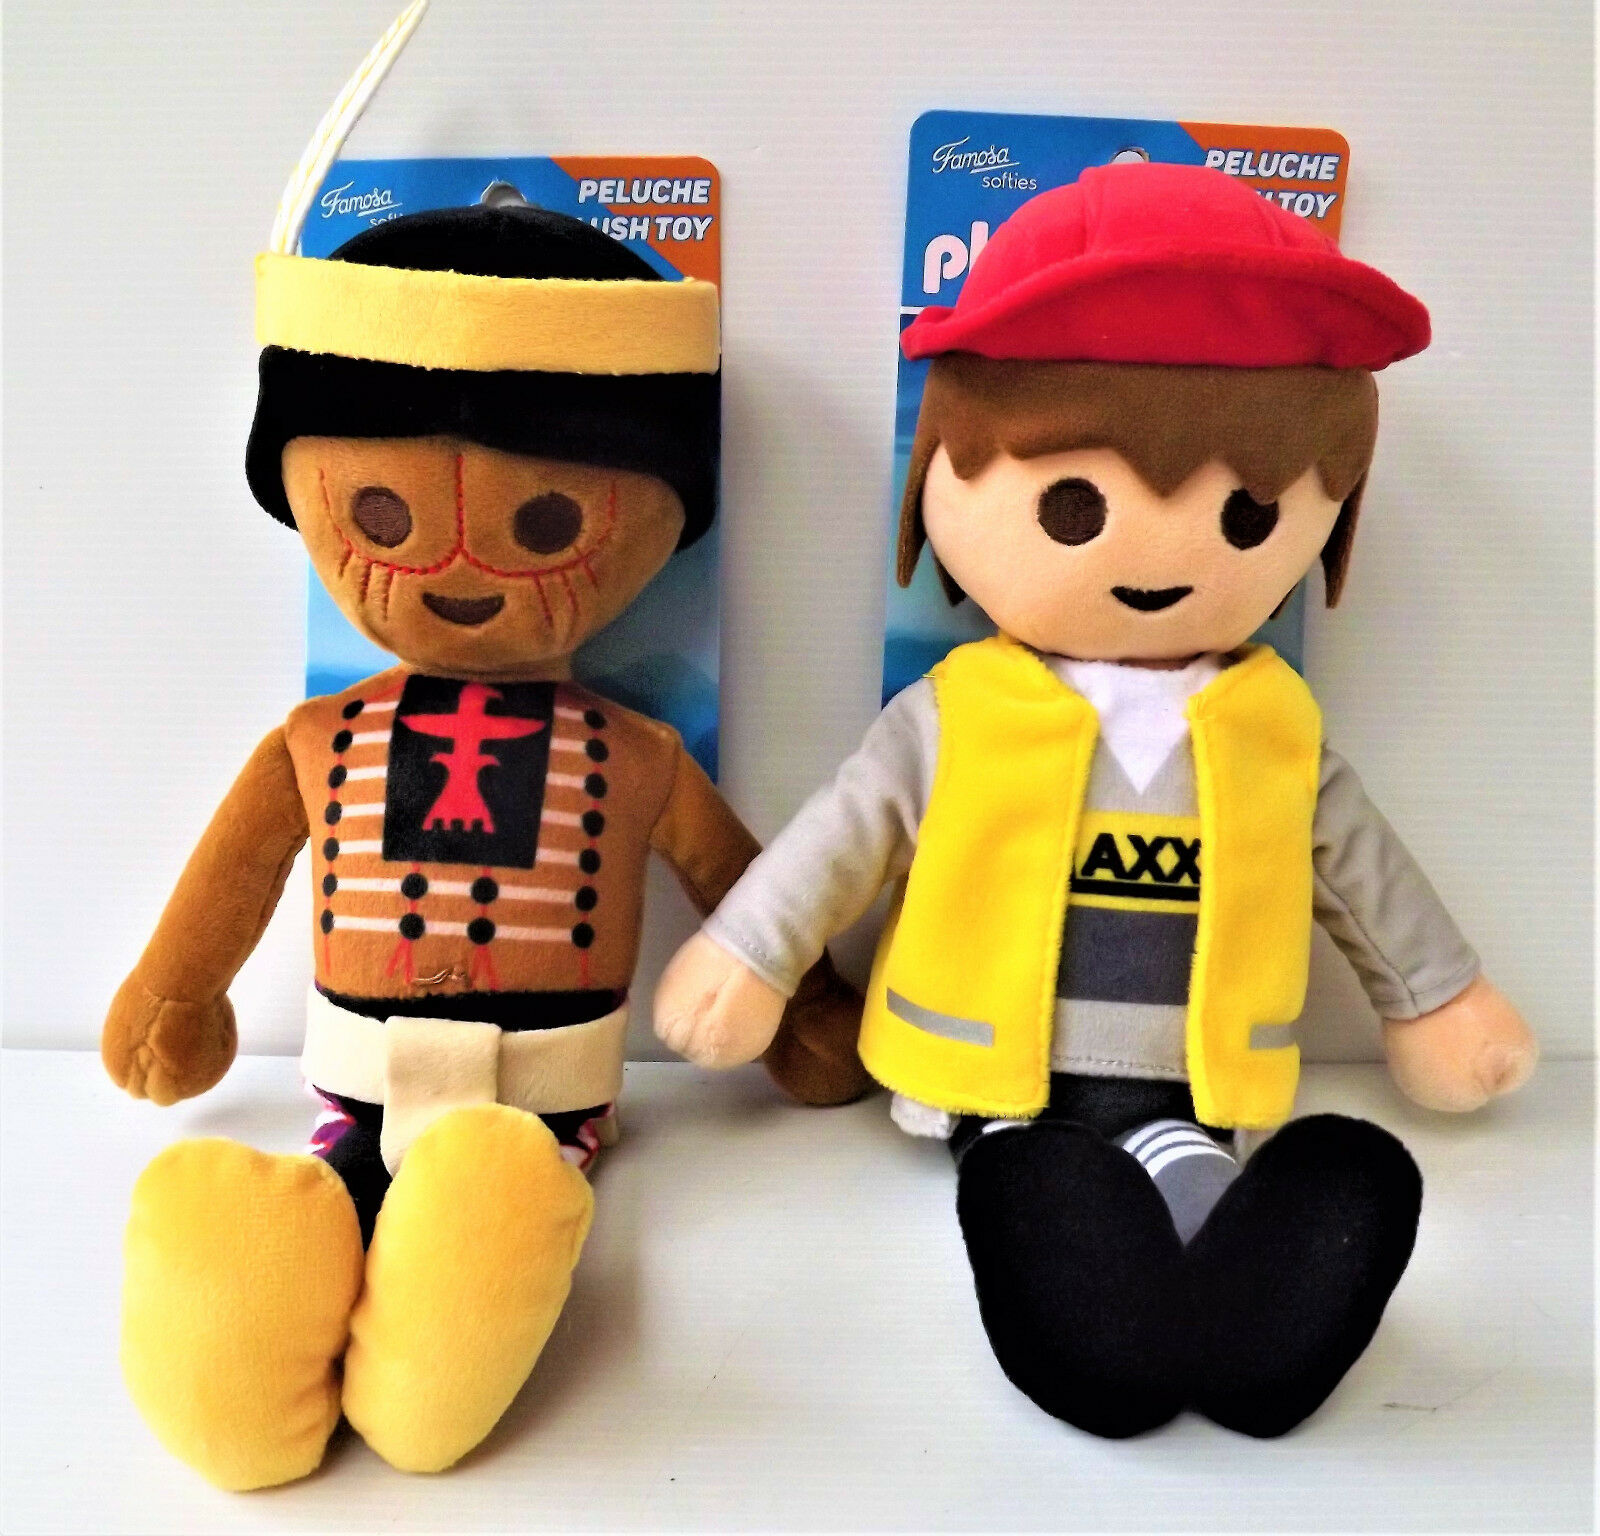 PLAYMOBIL - Set of 2 stuffed Plush Toy - Famosa Softies 30 cm - NEW